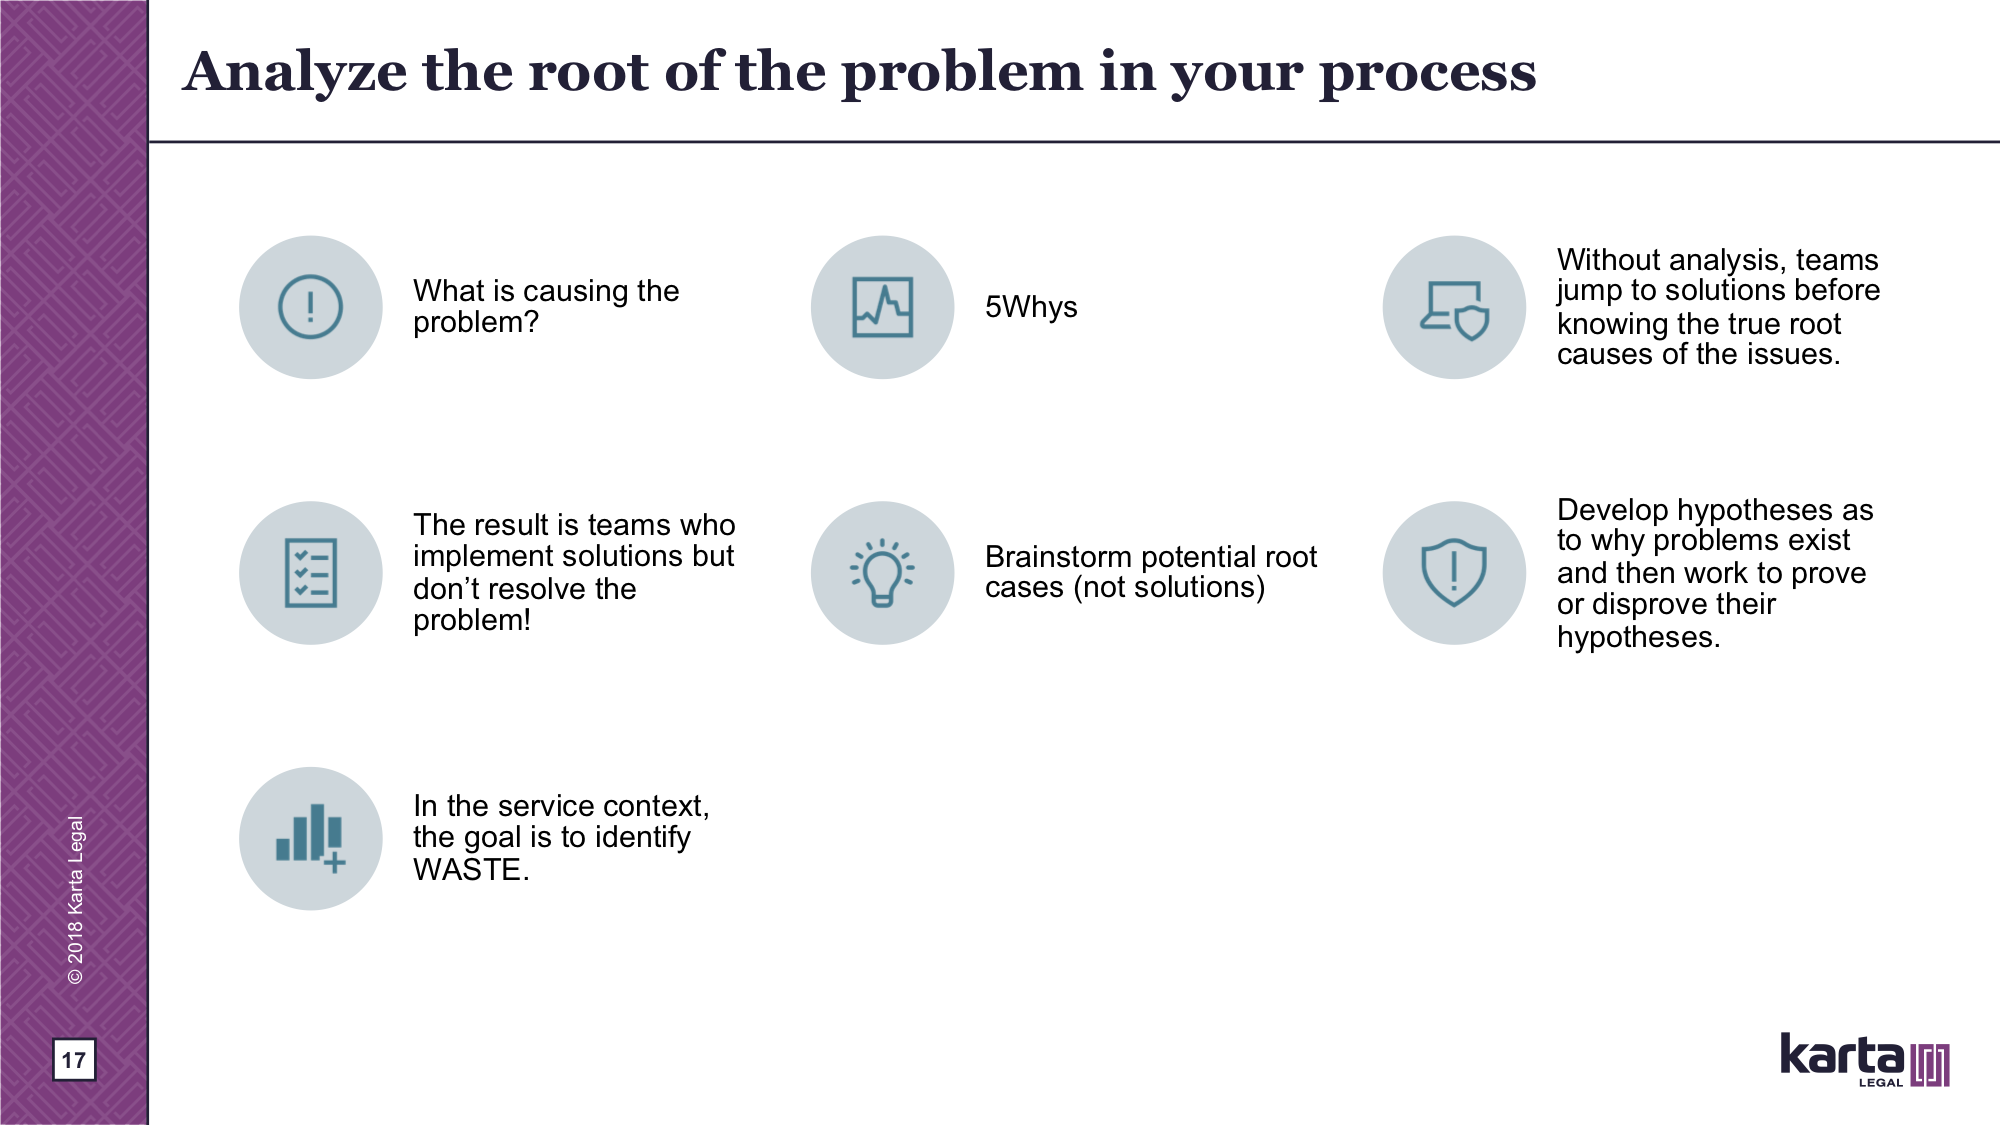 Cause root of the problem in your process